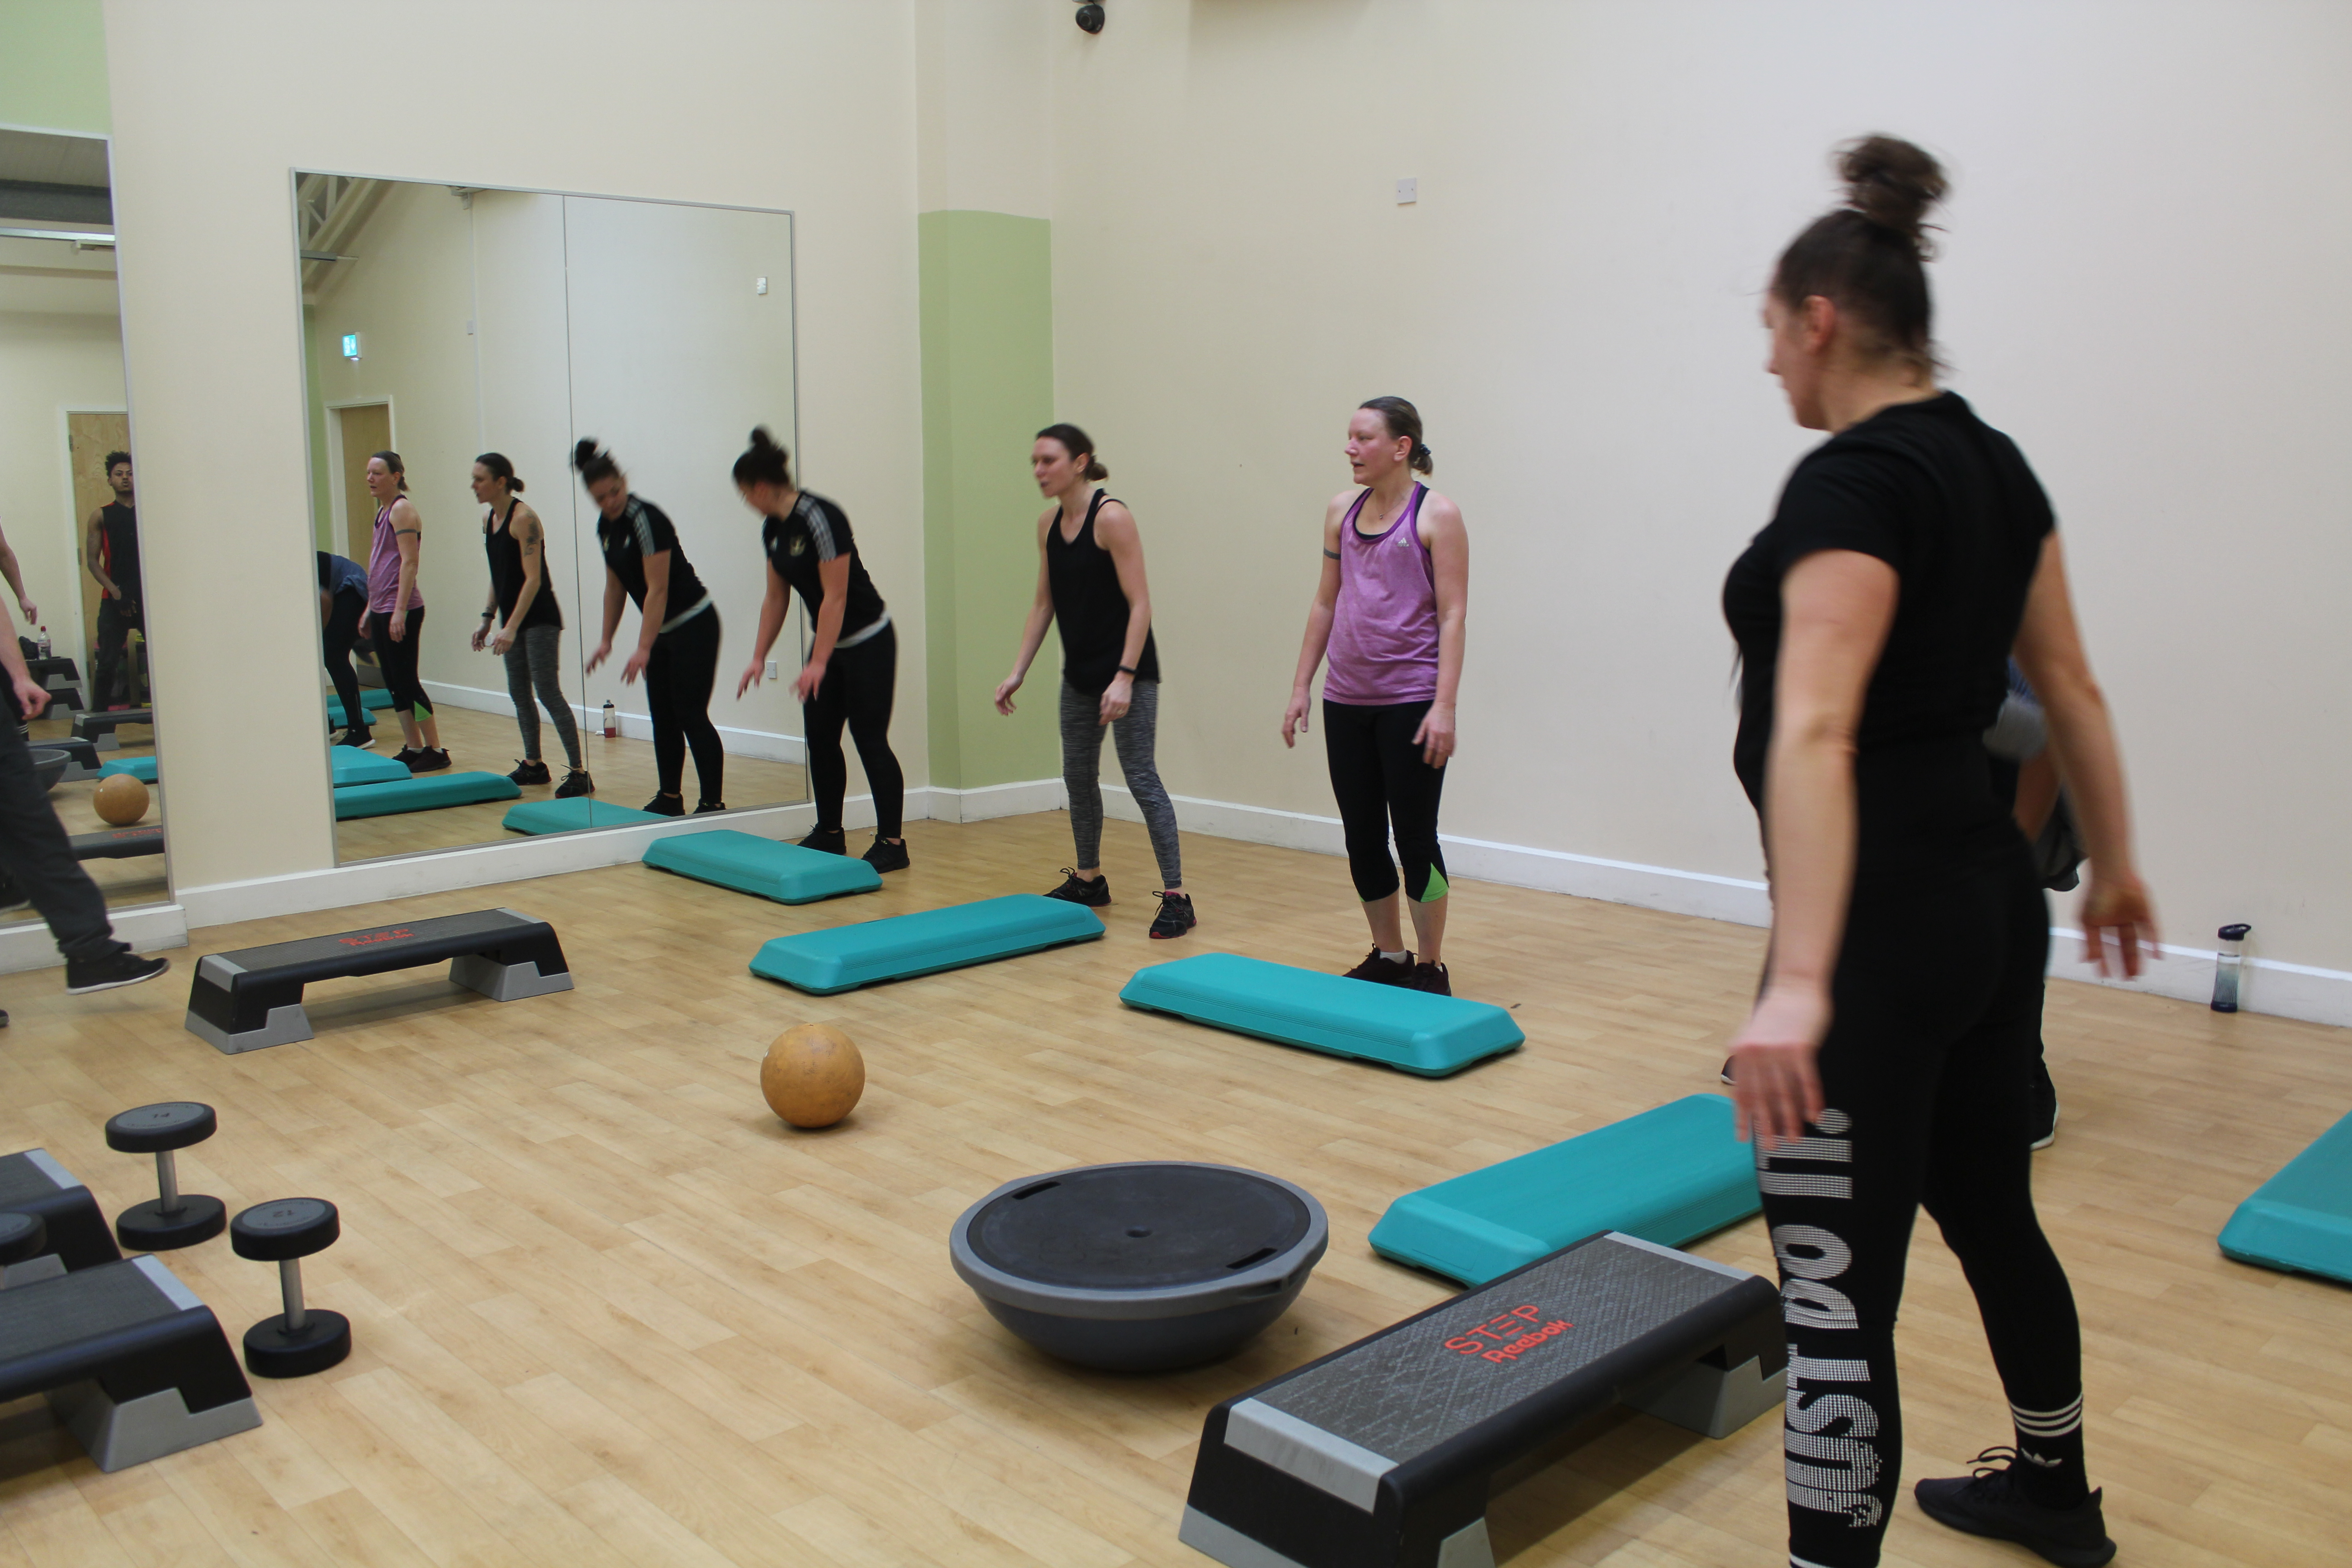 Women in group exercise class